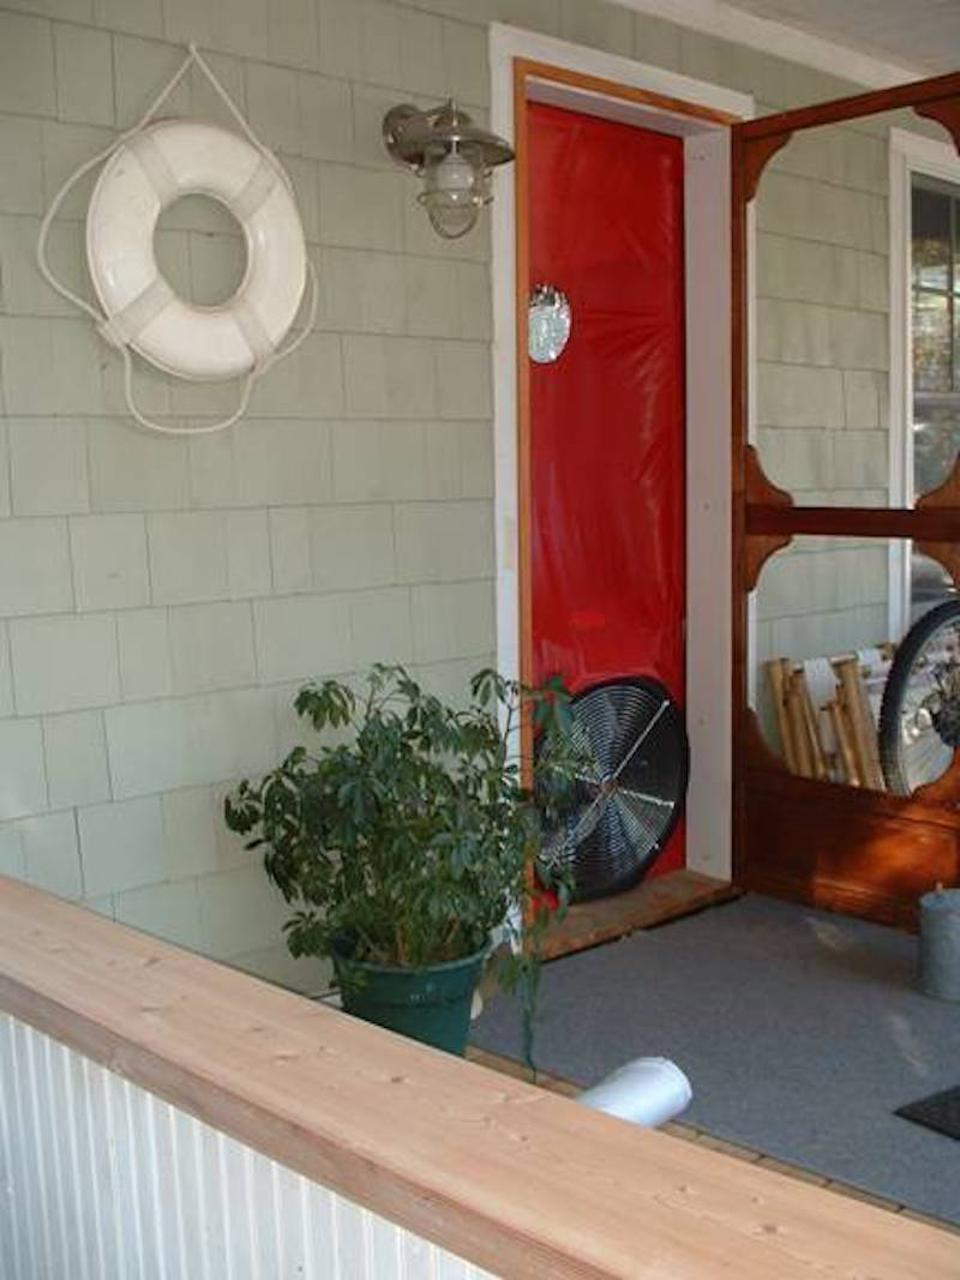 A blower door test is being conducted in this newly renovated home in Lakeside, Ohio.